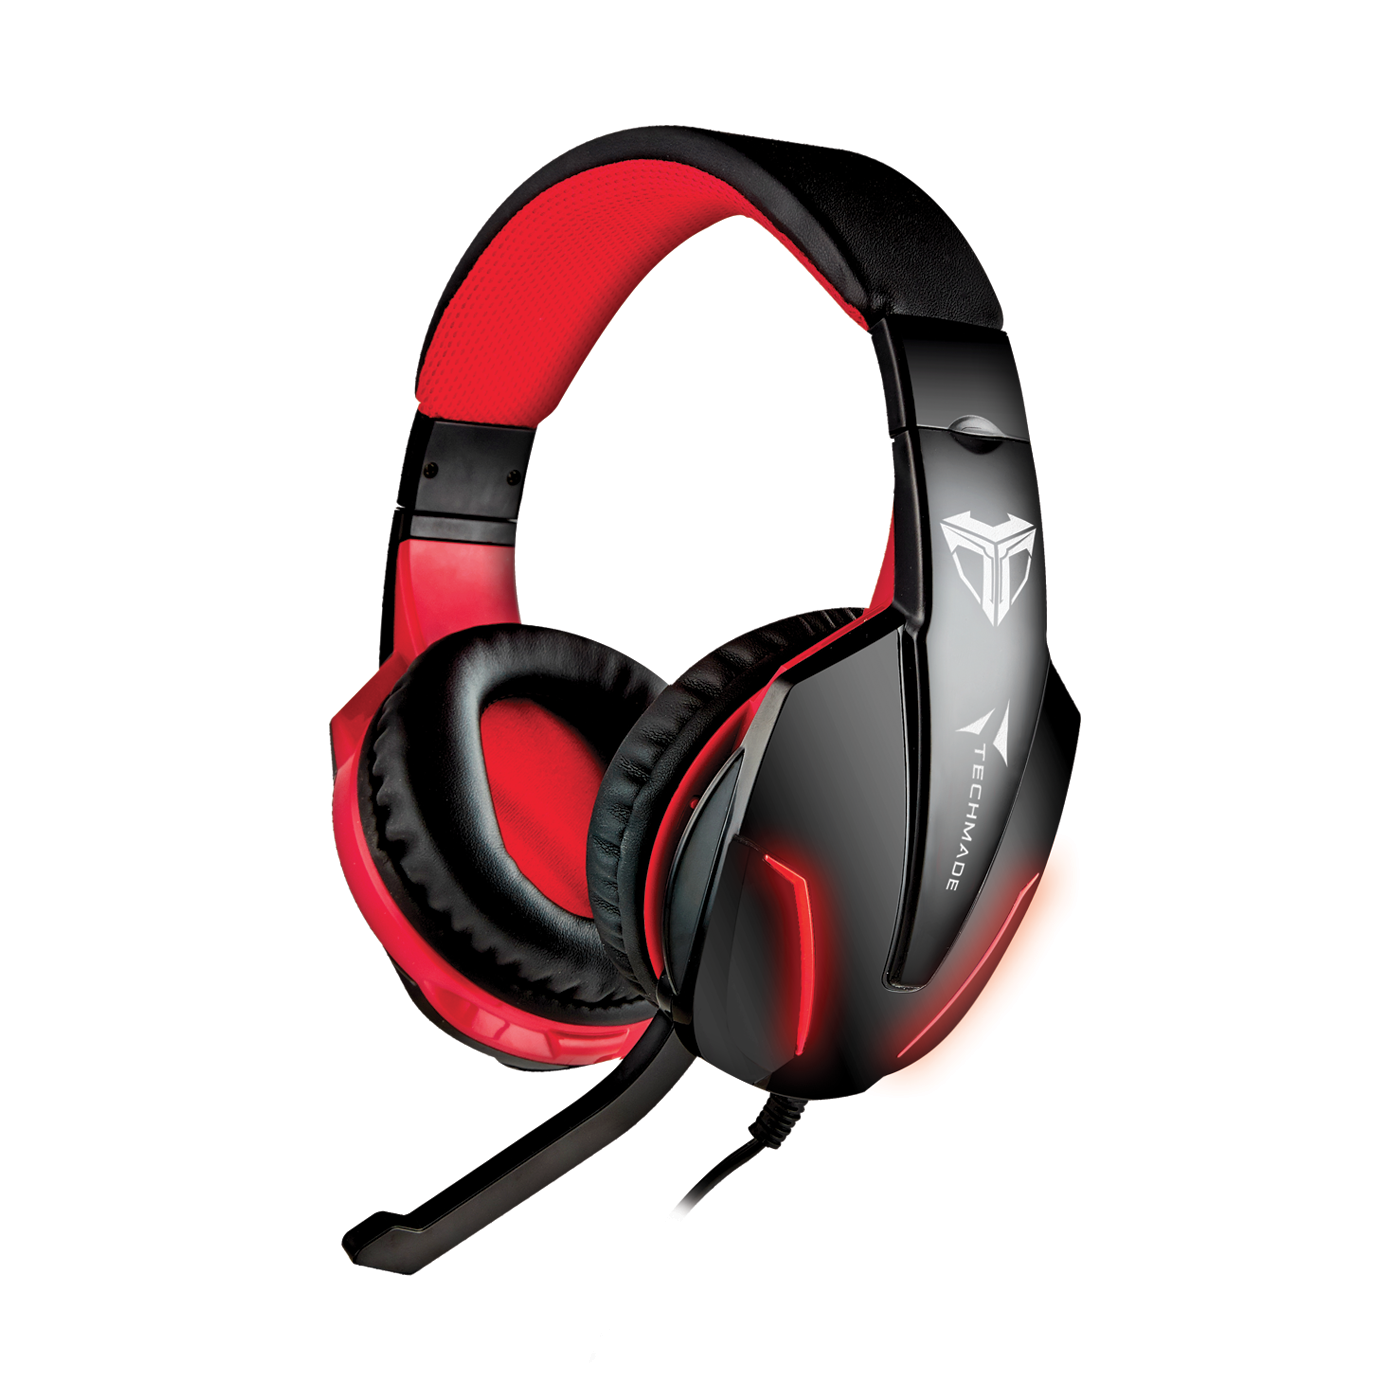 TECHMADE CUFFIE GAMING M ULTIMEDIALI TM-FL1